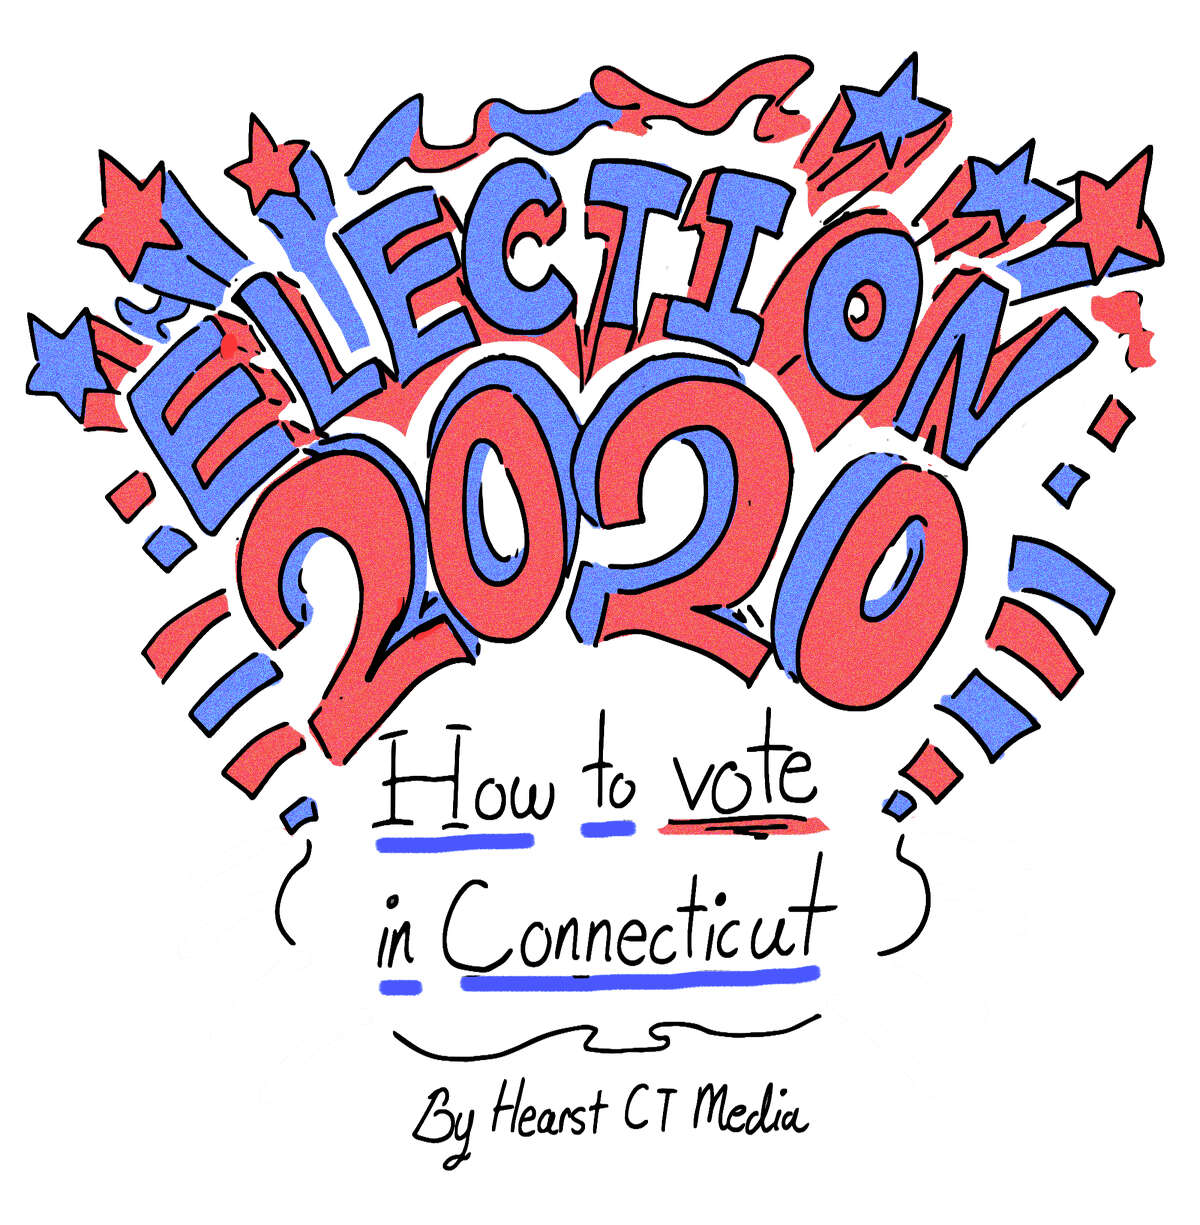 Here's your guide to voting in Connecticut in the 2020 election.